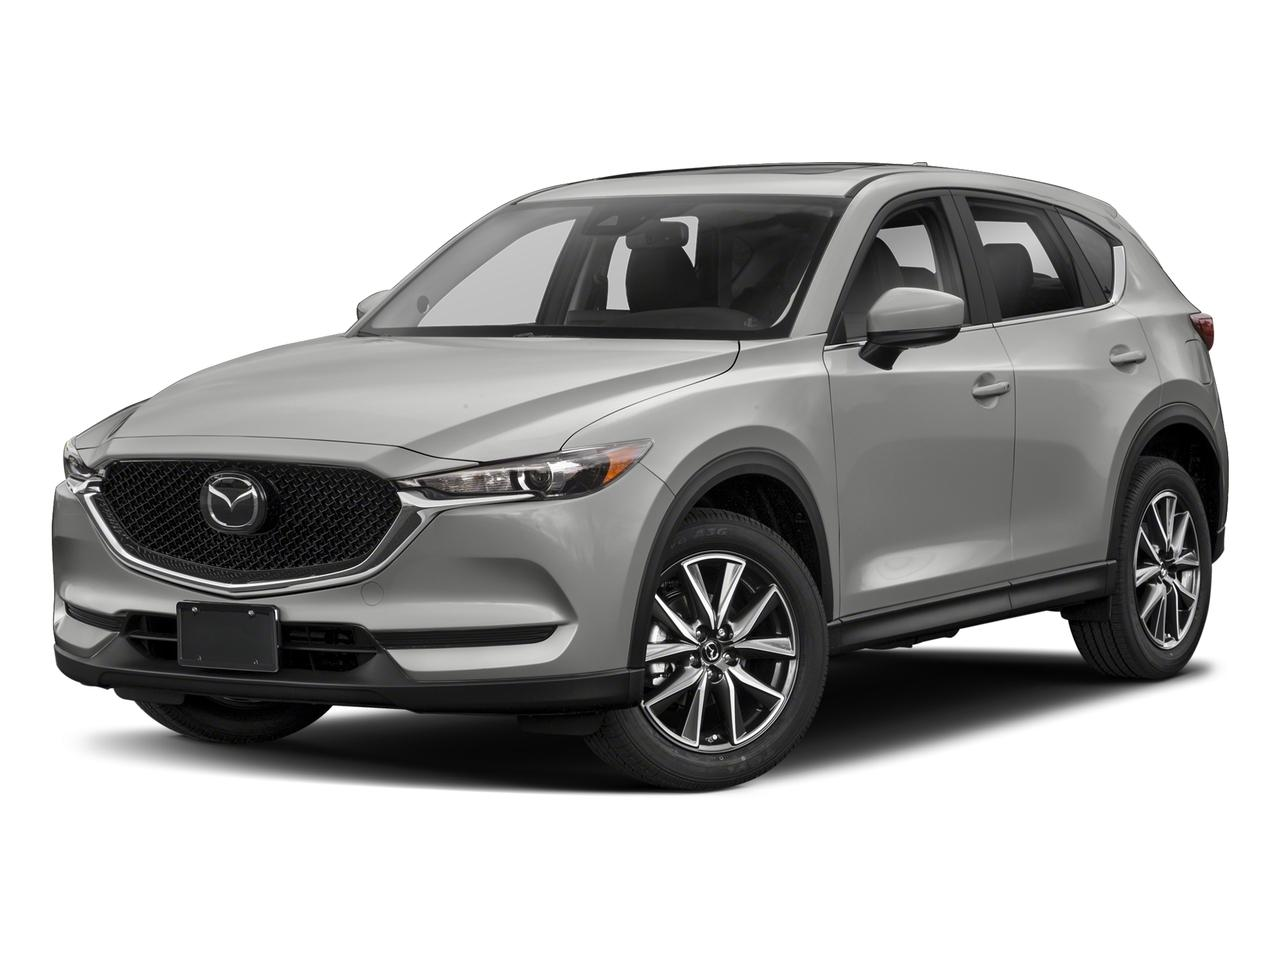 2018 Mazda CX-5 Vehicle Photo in BOONVILLE, IN 47601-9633